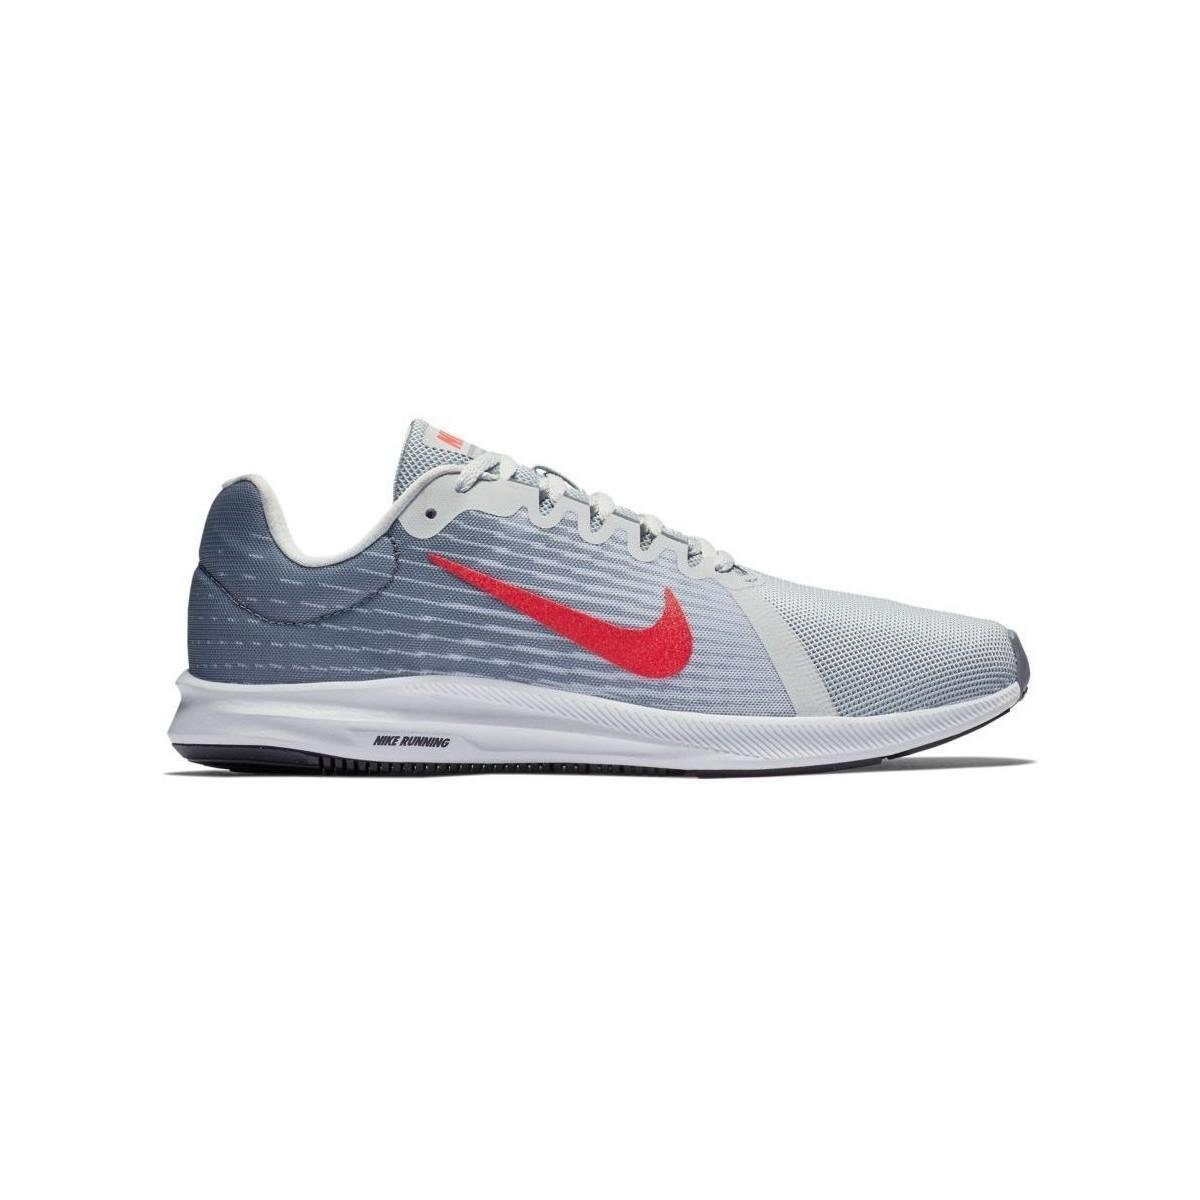 890a597e34fe7 Nike 908984 Downshifter 8 Men s Shoes (trainers) In Grey in Gray for ...